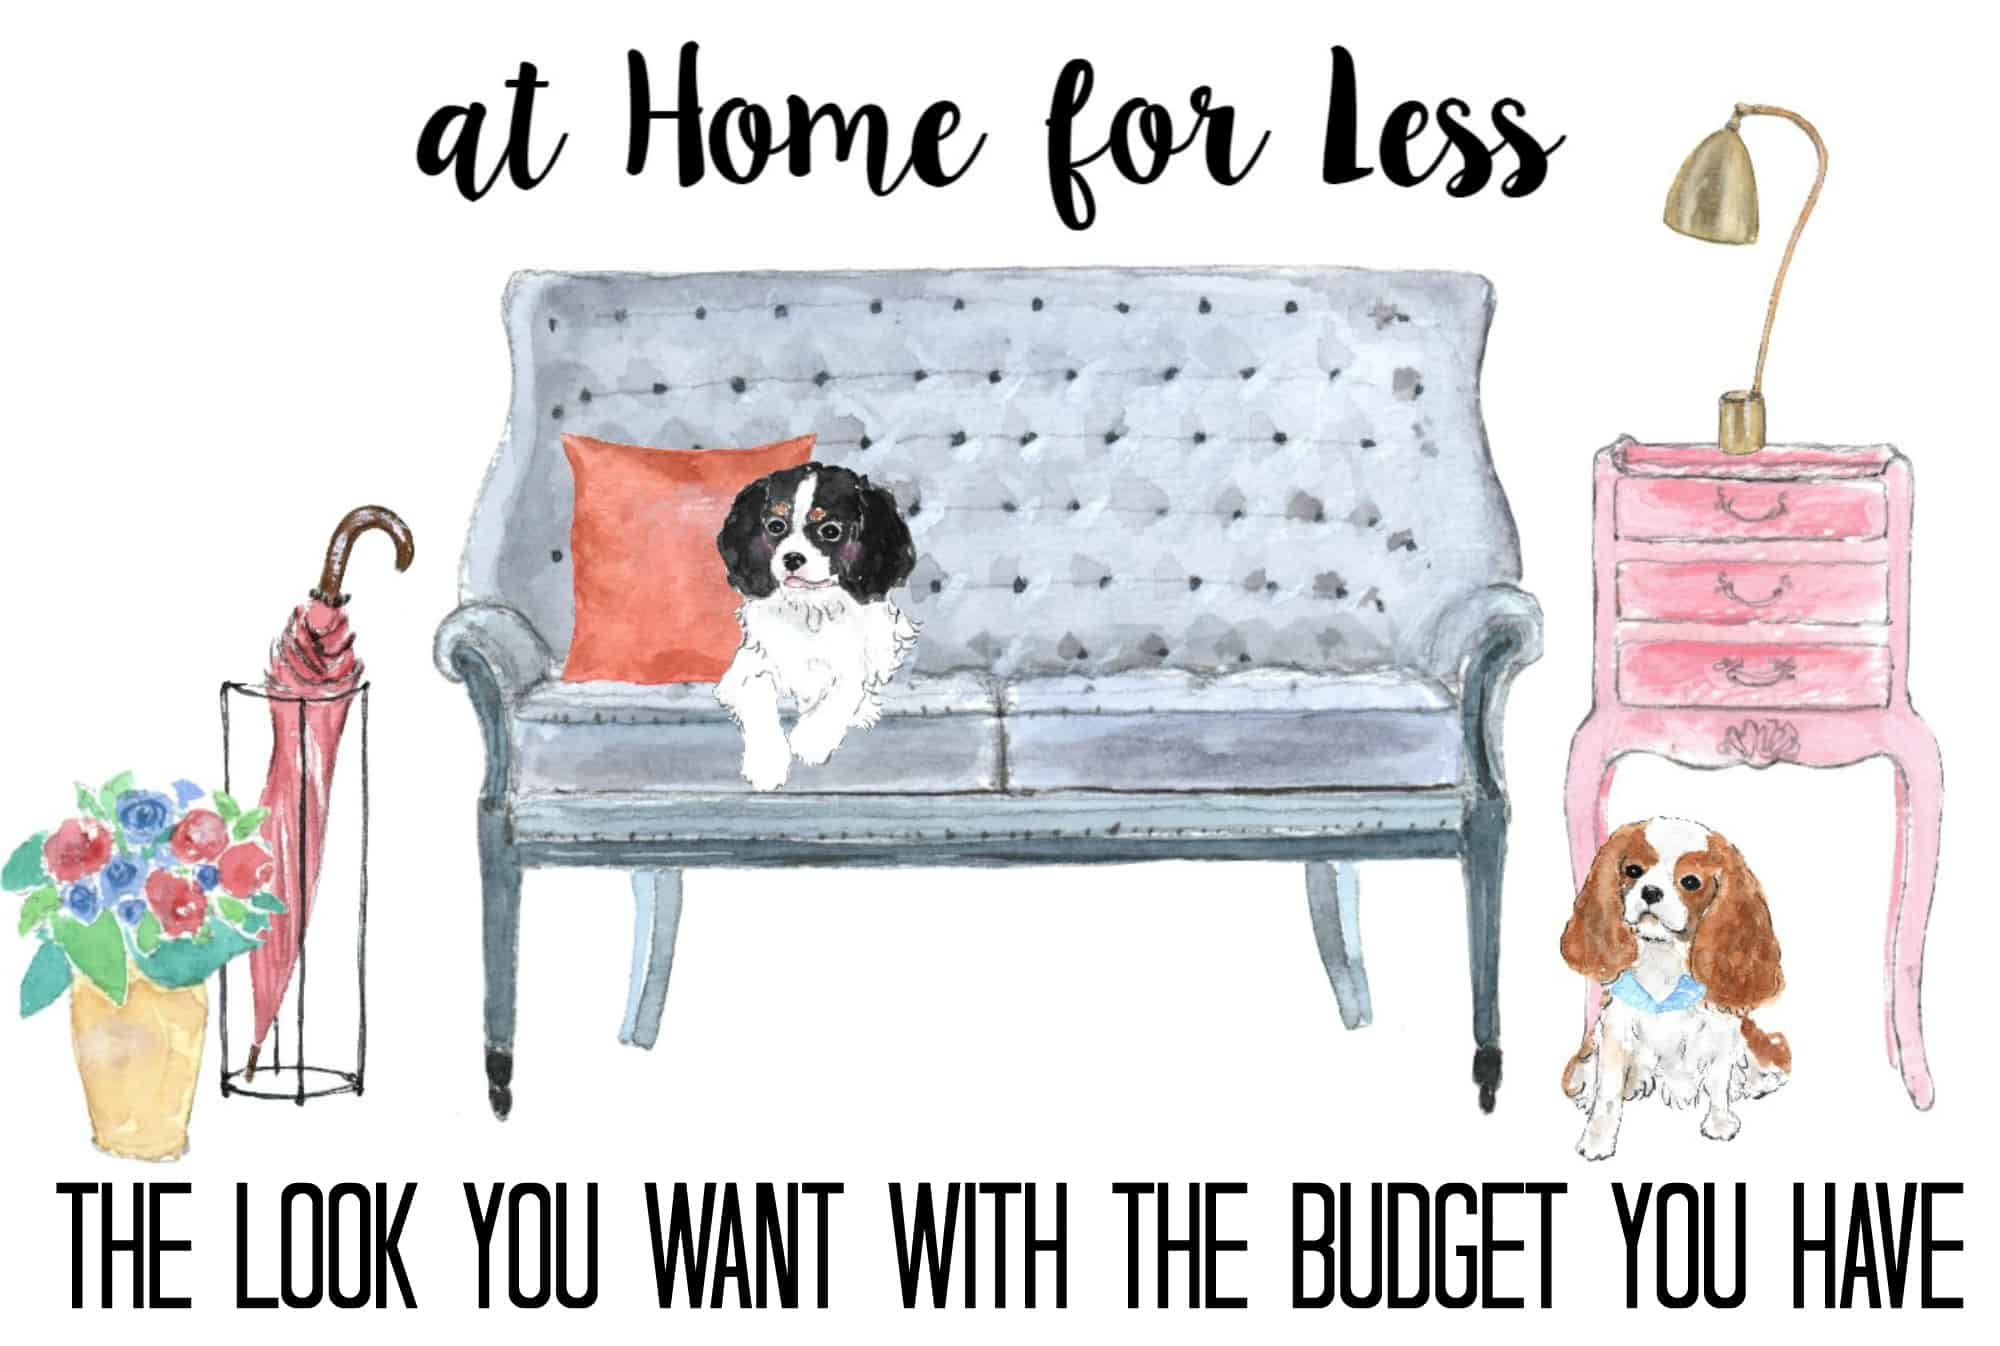 At Home for Less back cover- the look you want with the budget you have